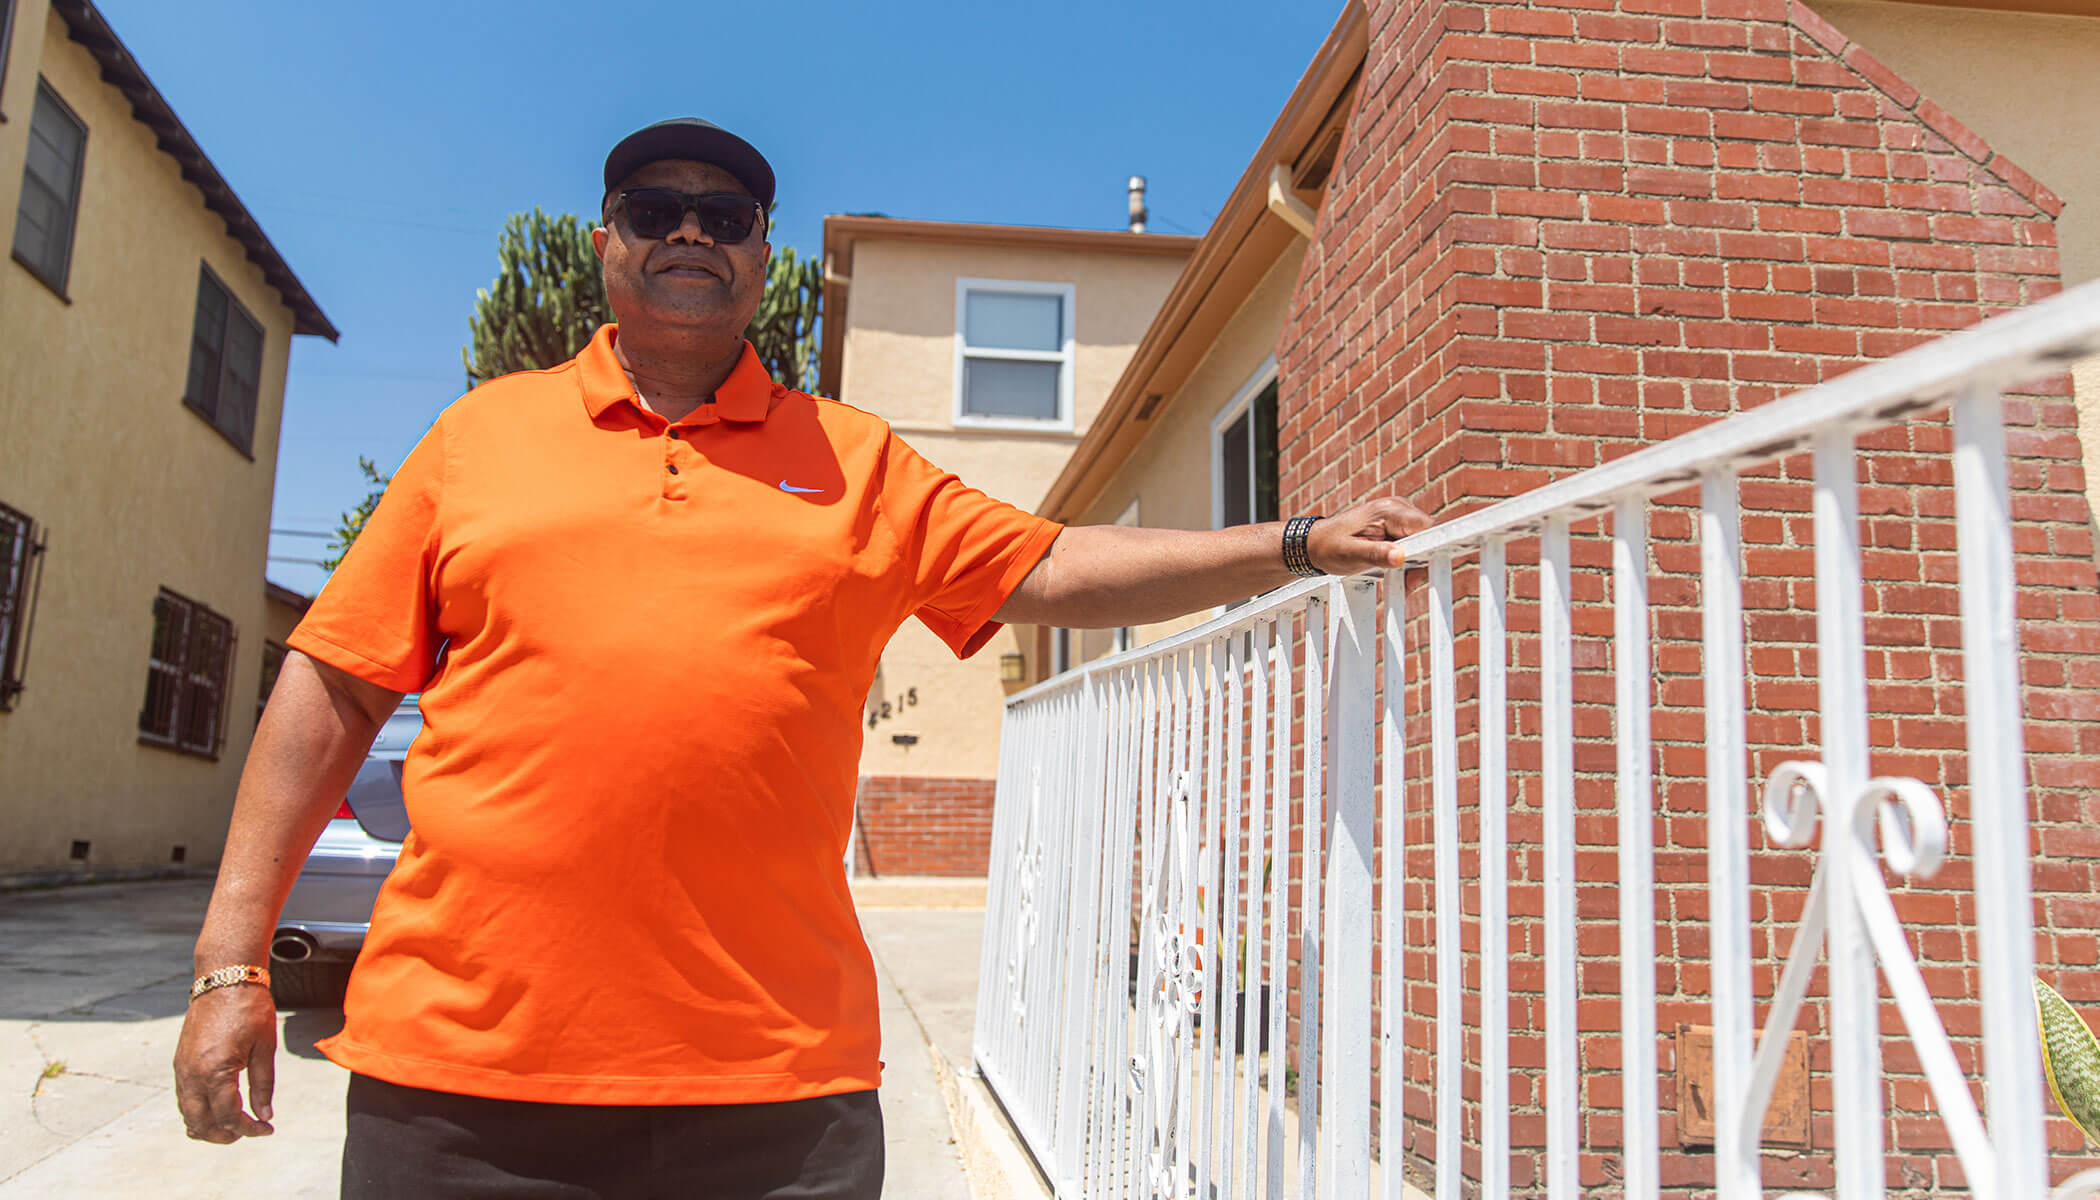 A man wears an orange shirt, sunglasses, and a baseball cap and rests his hand on a white fence.